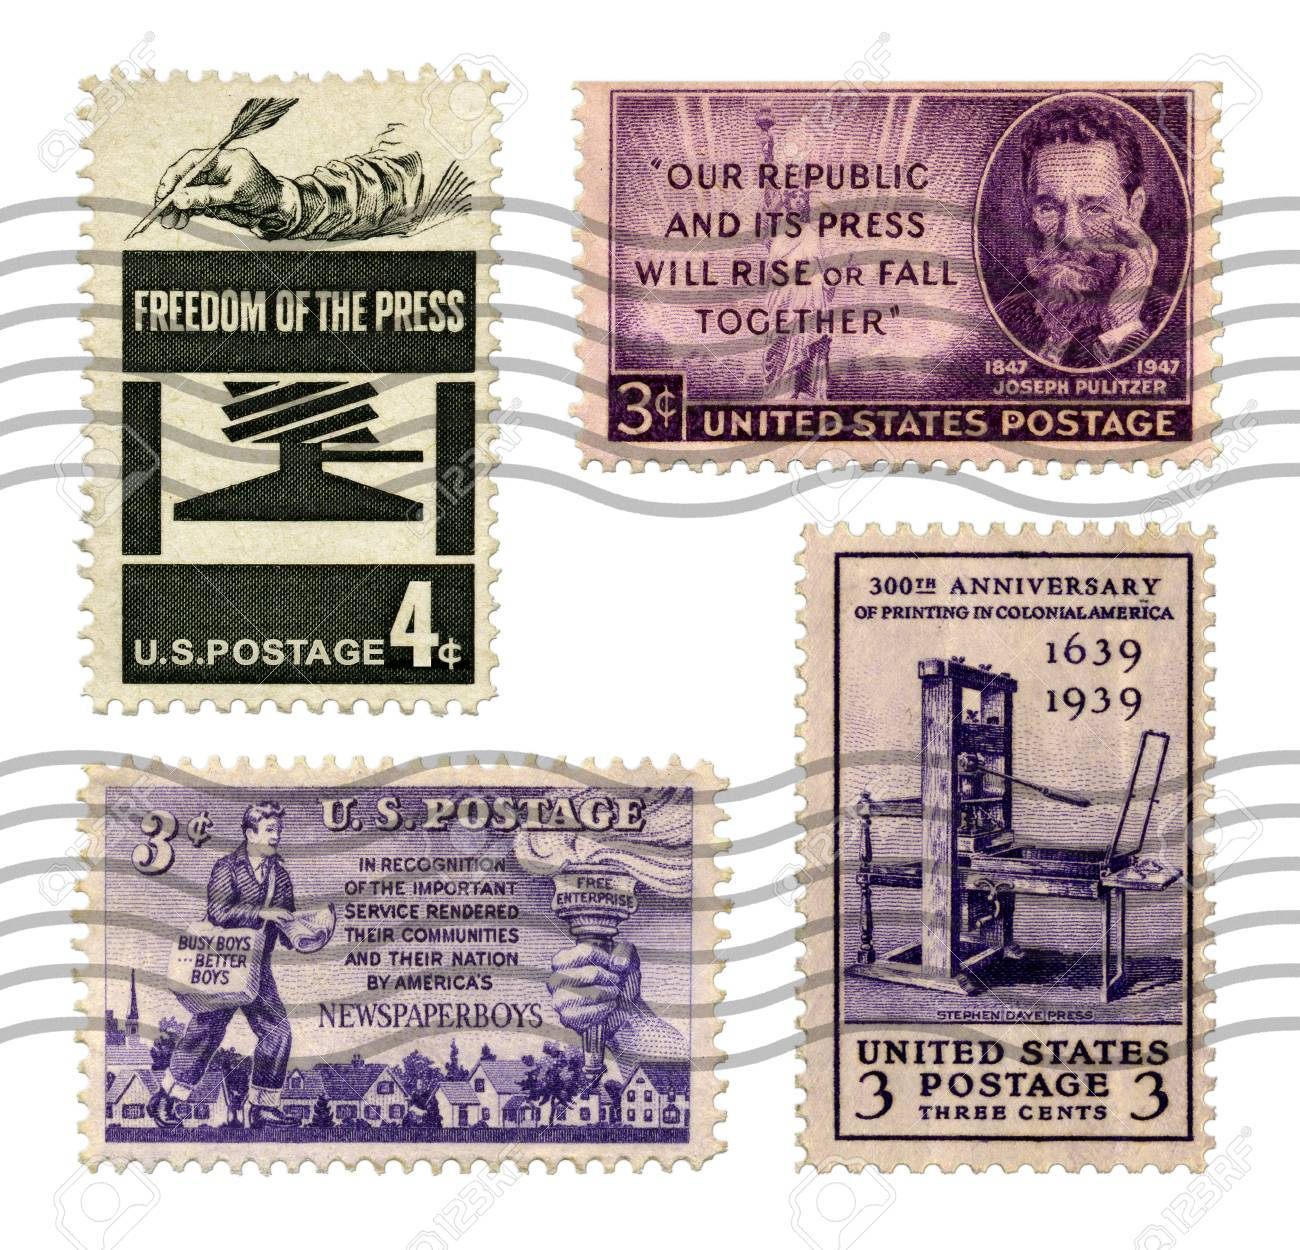 U S  Postage Stamps commemorating the Freedom of the Press, free